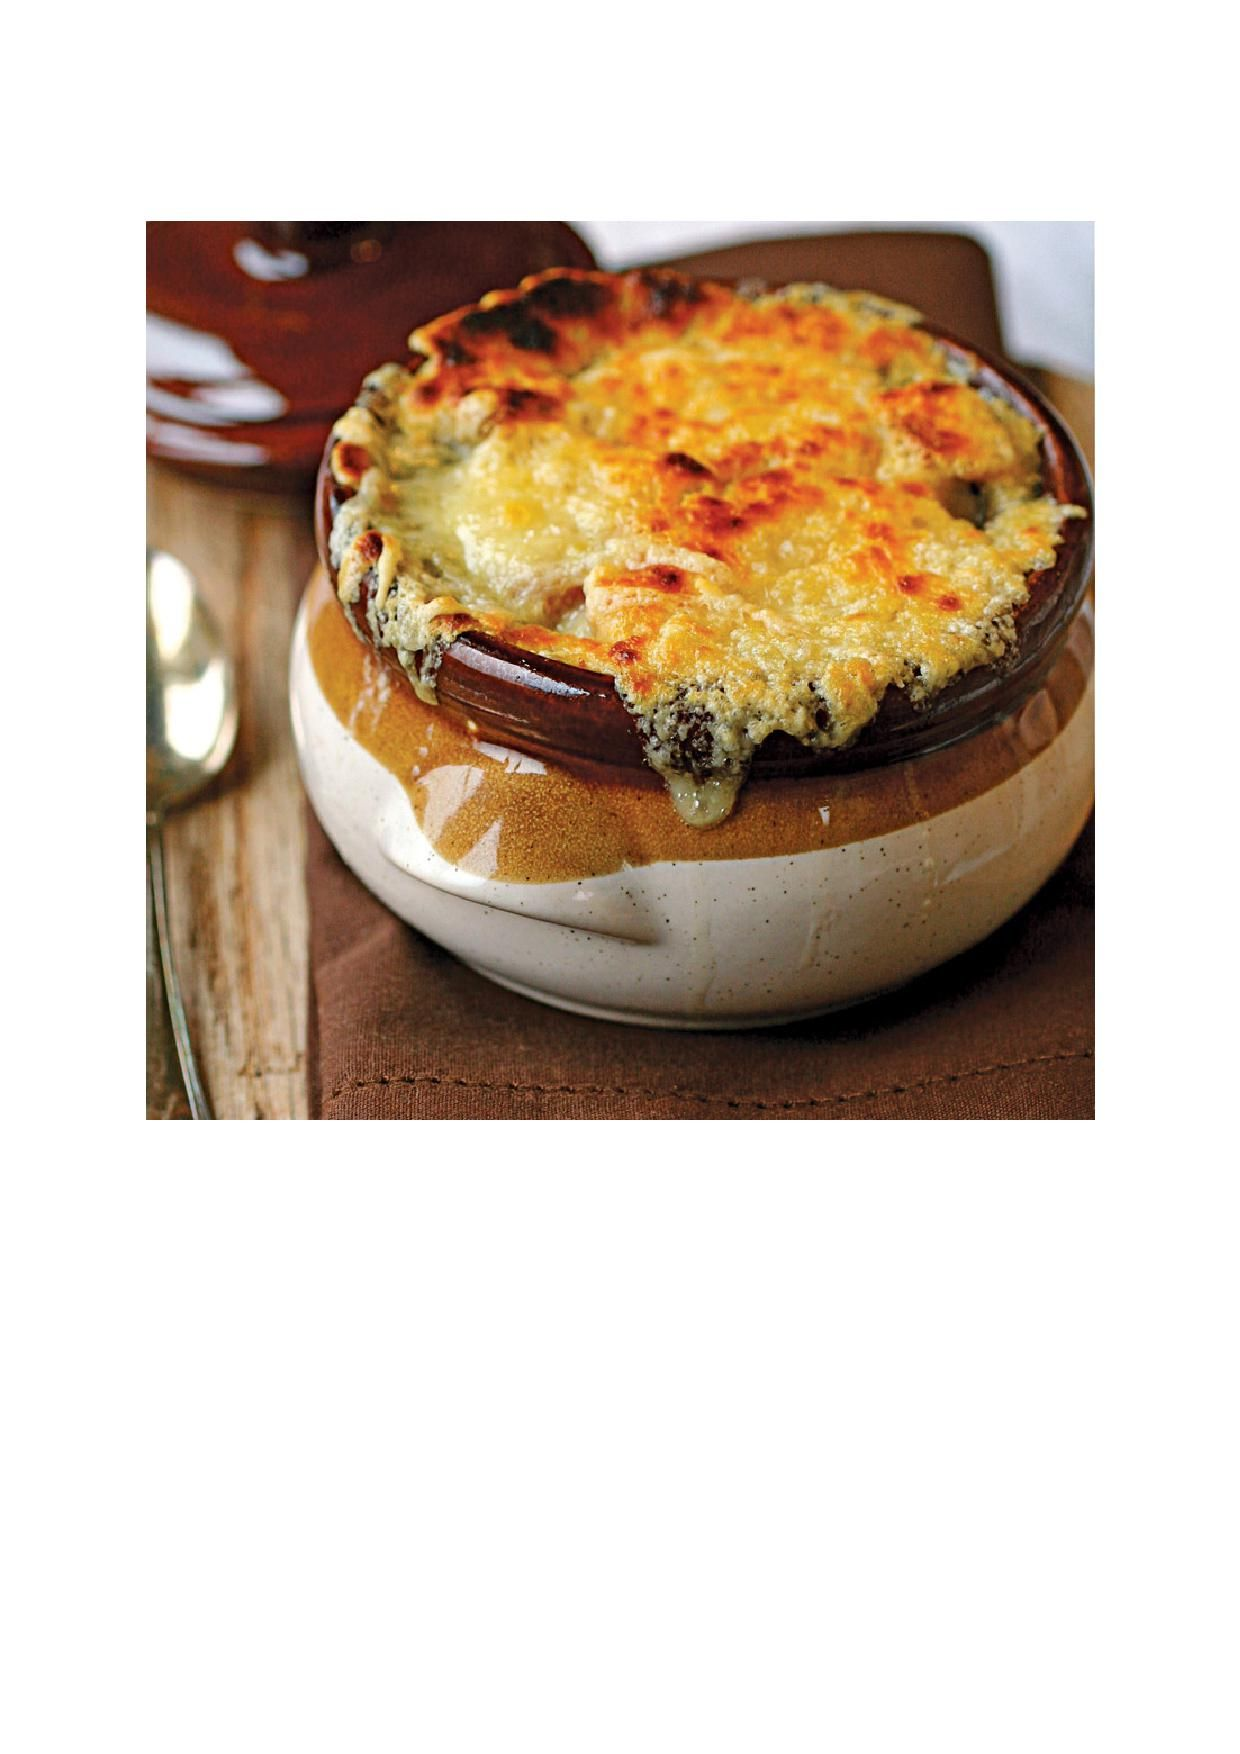 French Onion Soup!!